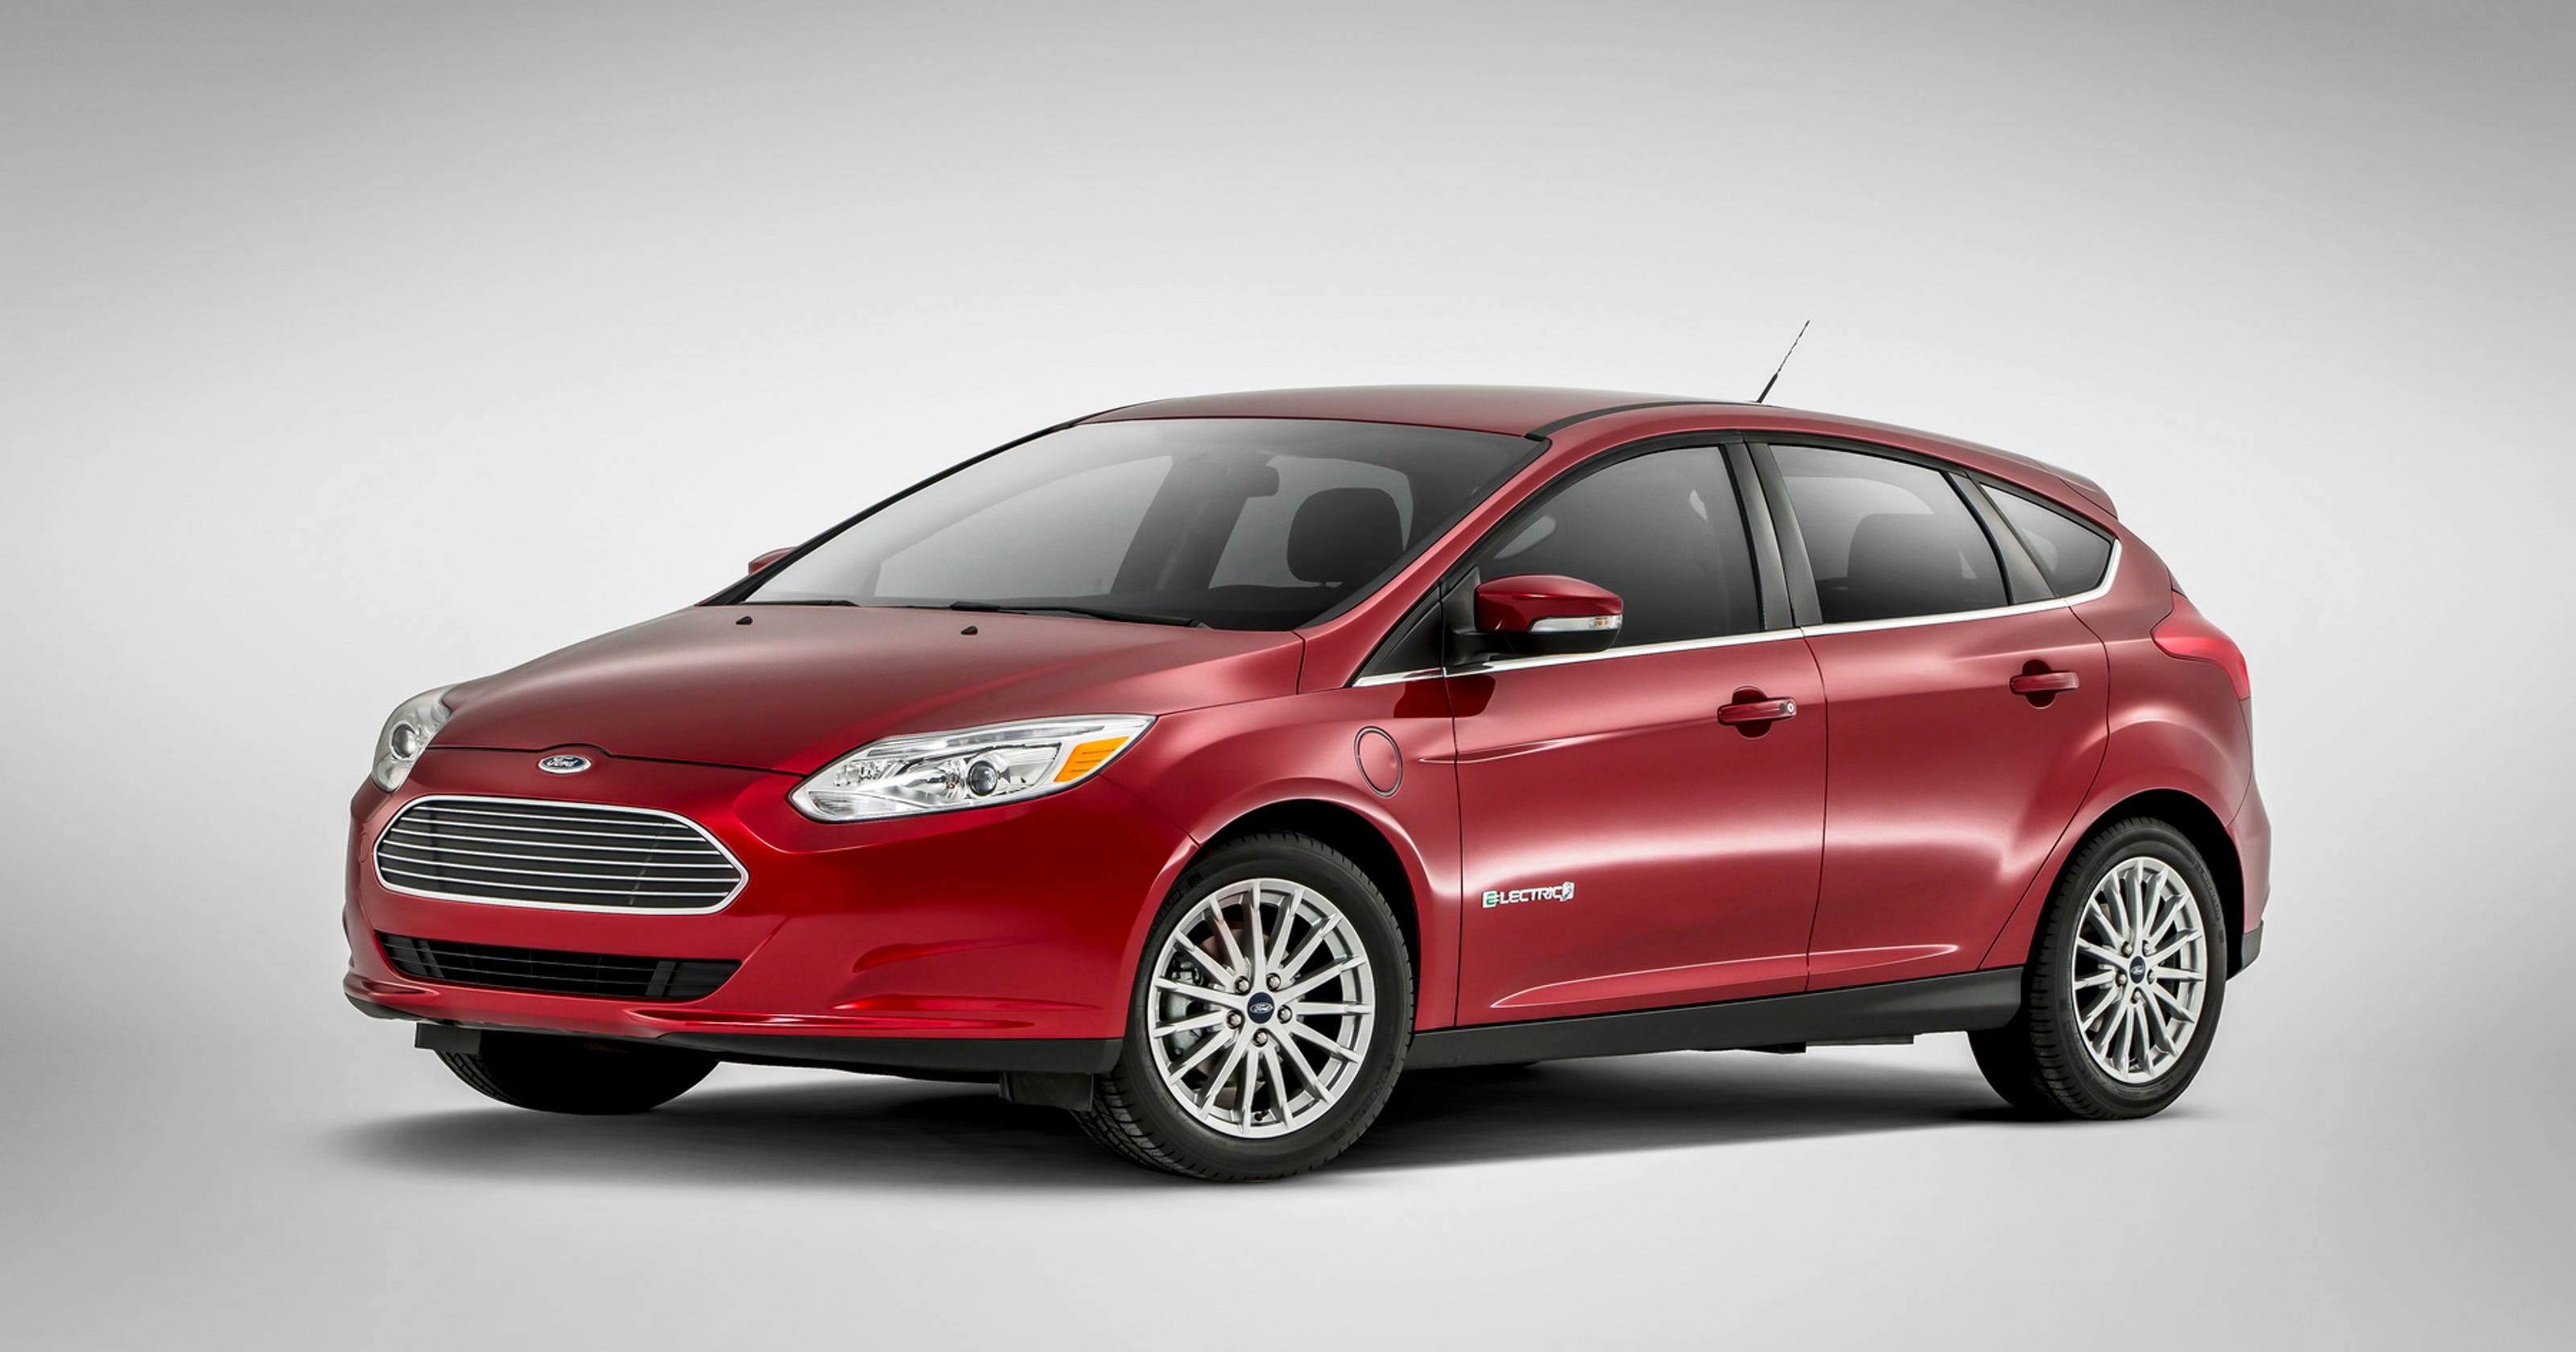 2017 Ford Focus Electric Hatchback Is The Greenest Choice